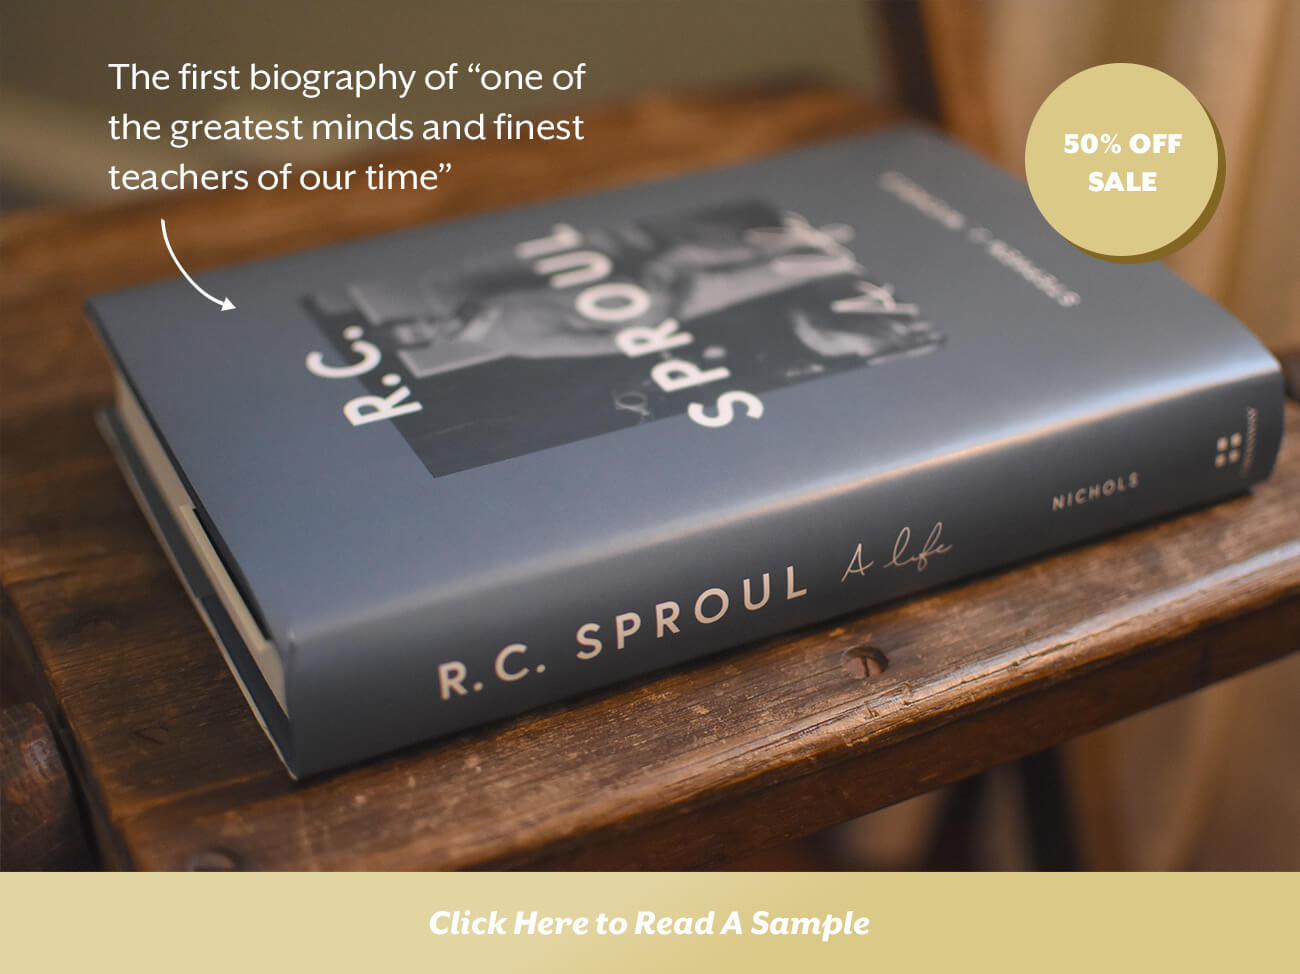 R.C. Sproul, A Life